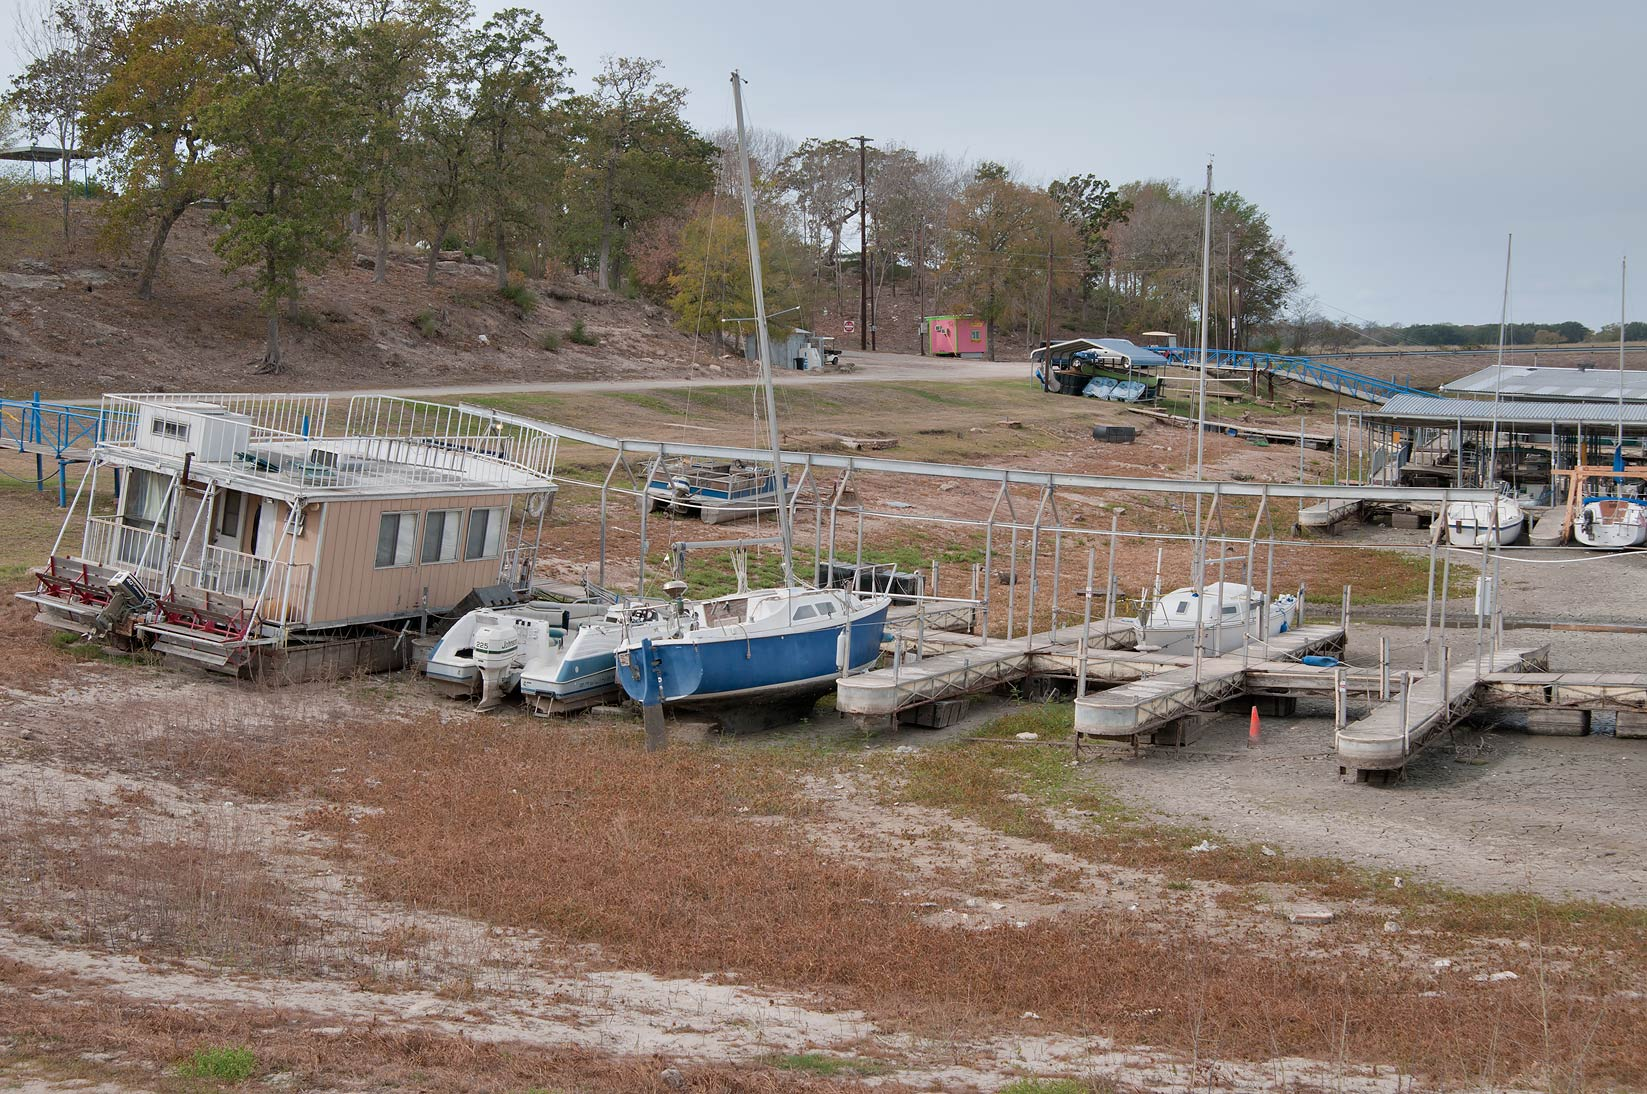 Marina at Lake Somerville, with low water level. Texas